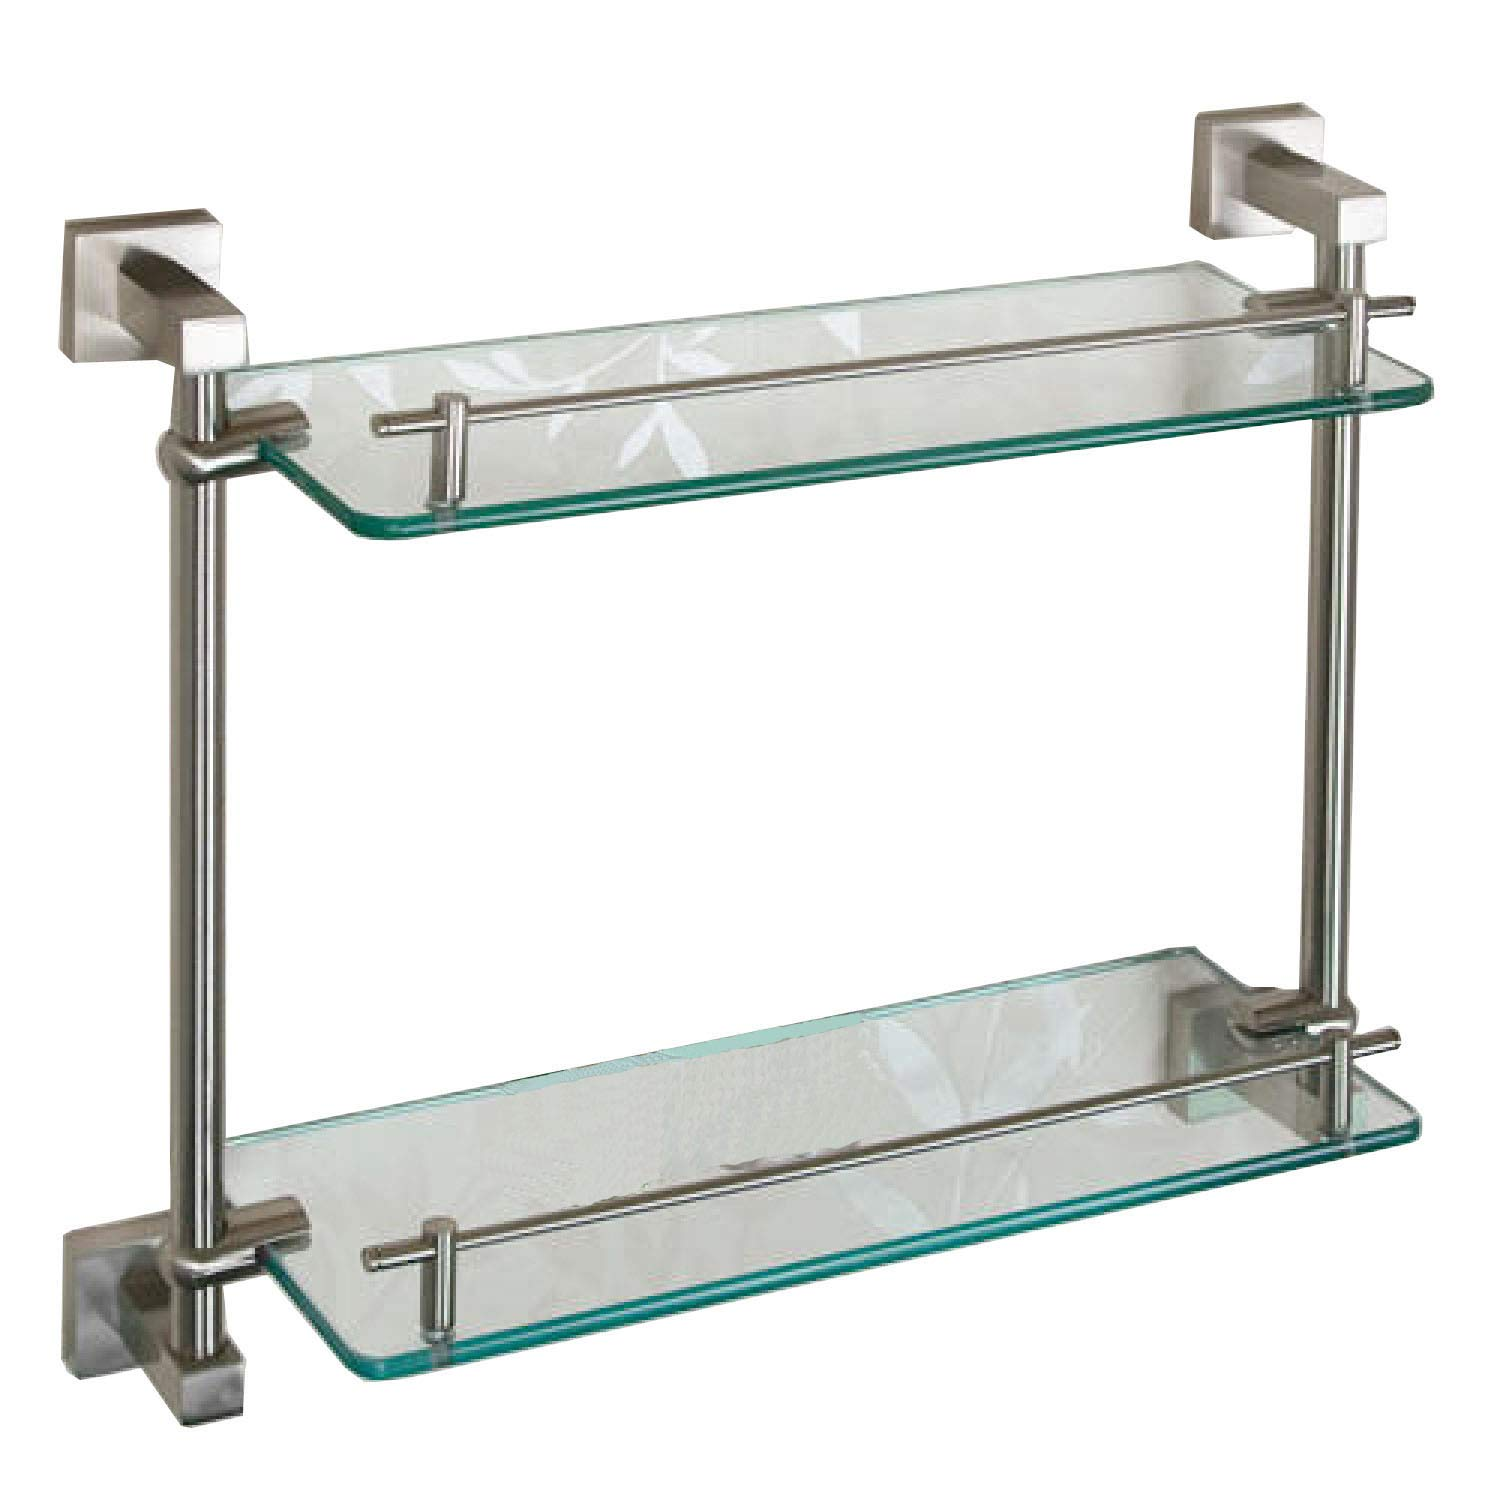 Naiture Tempered Glass Shelf - Two Shelves In Brushed